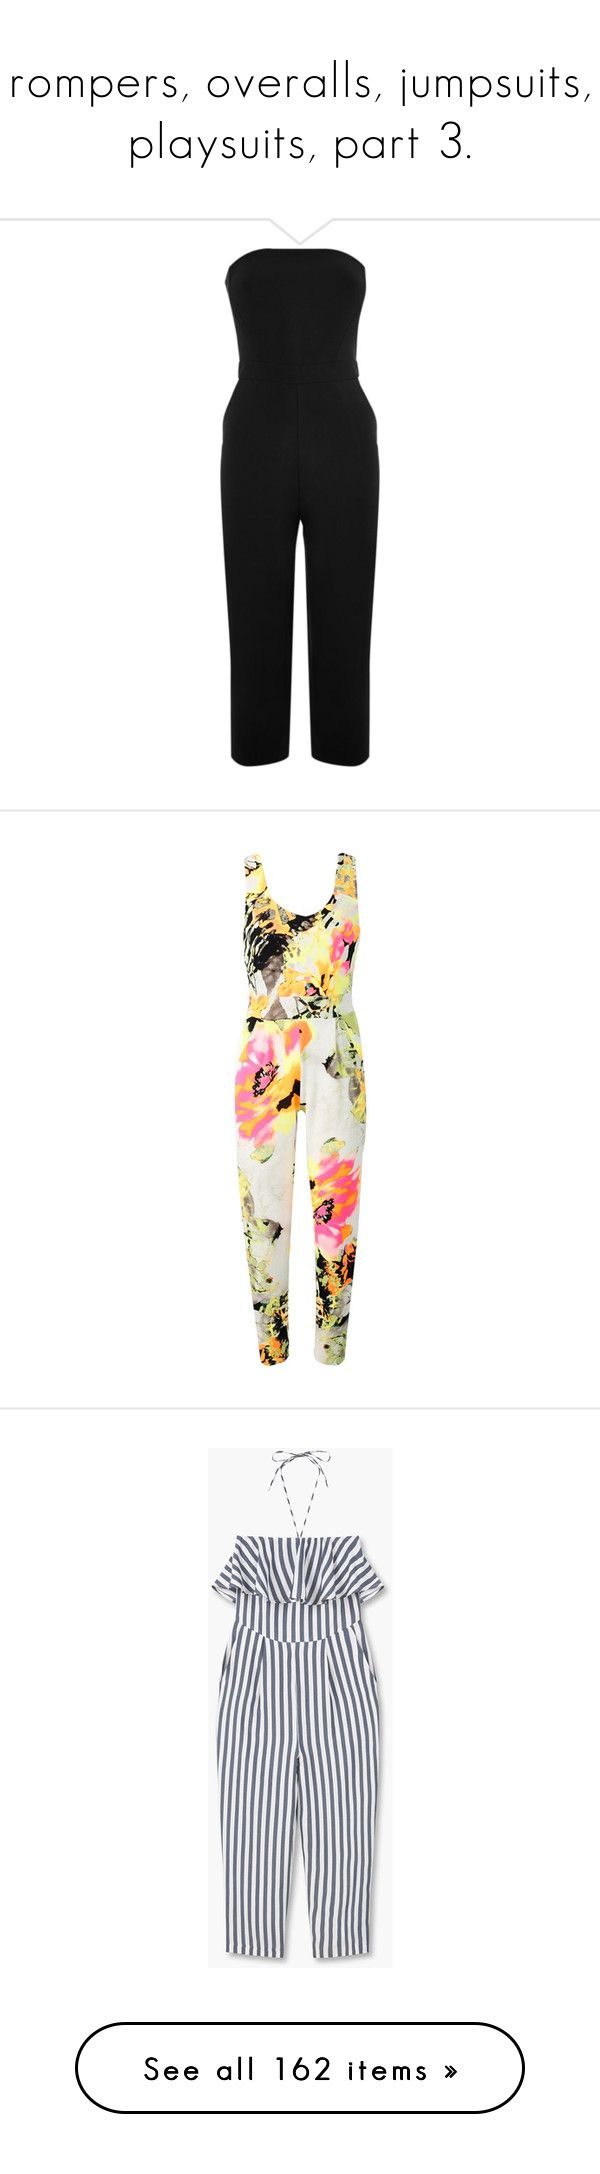 """""""rompers, overalls, jumpsuits, playsuits, part 3."""" by trillestqueen ❤ liked on Polyvore featuring jumpsuits, jump suit, bandeau jumpsuit, summer jumpsuits, cropped jumpsuit, rompers, dresses, outfits, assorted and floral jumpsuit"""